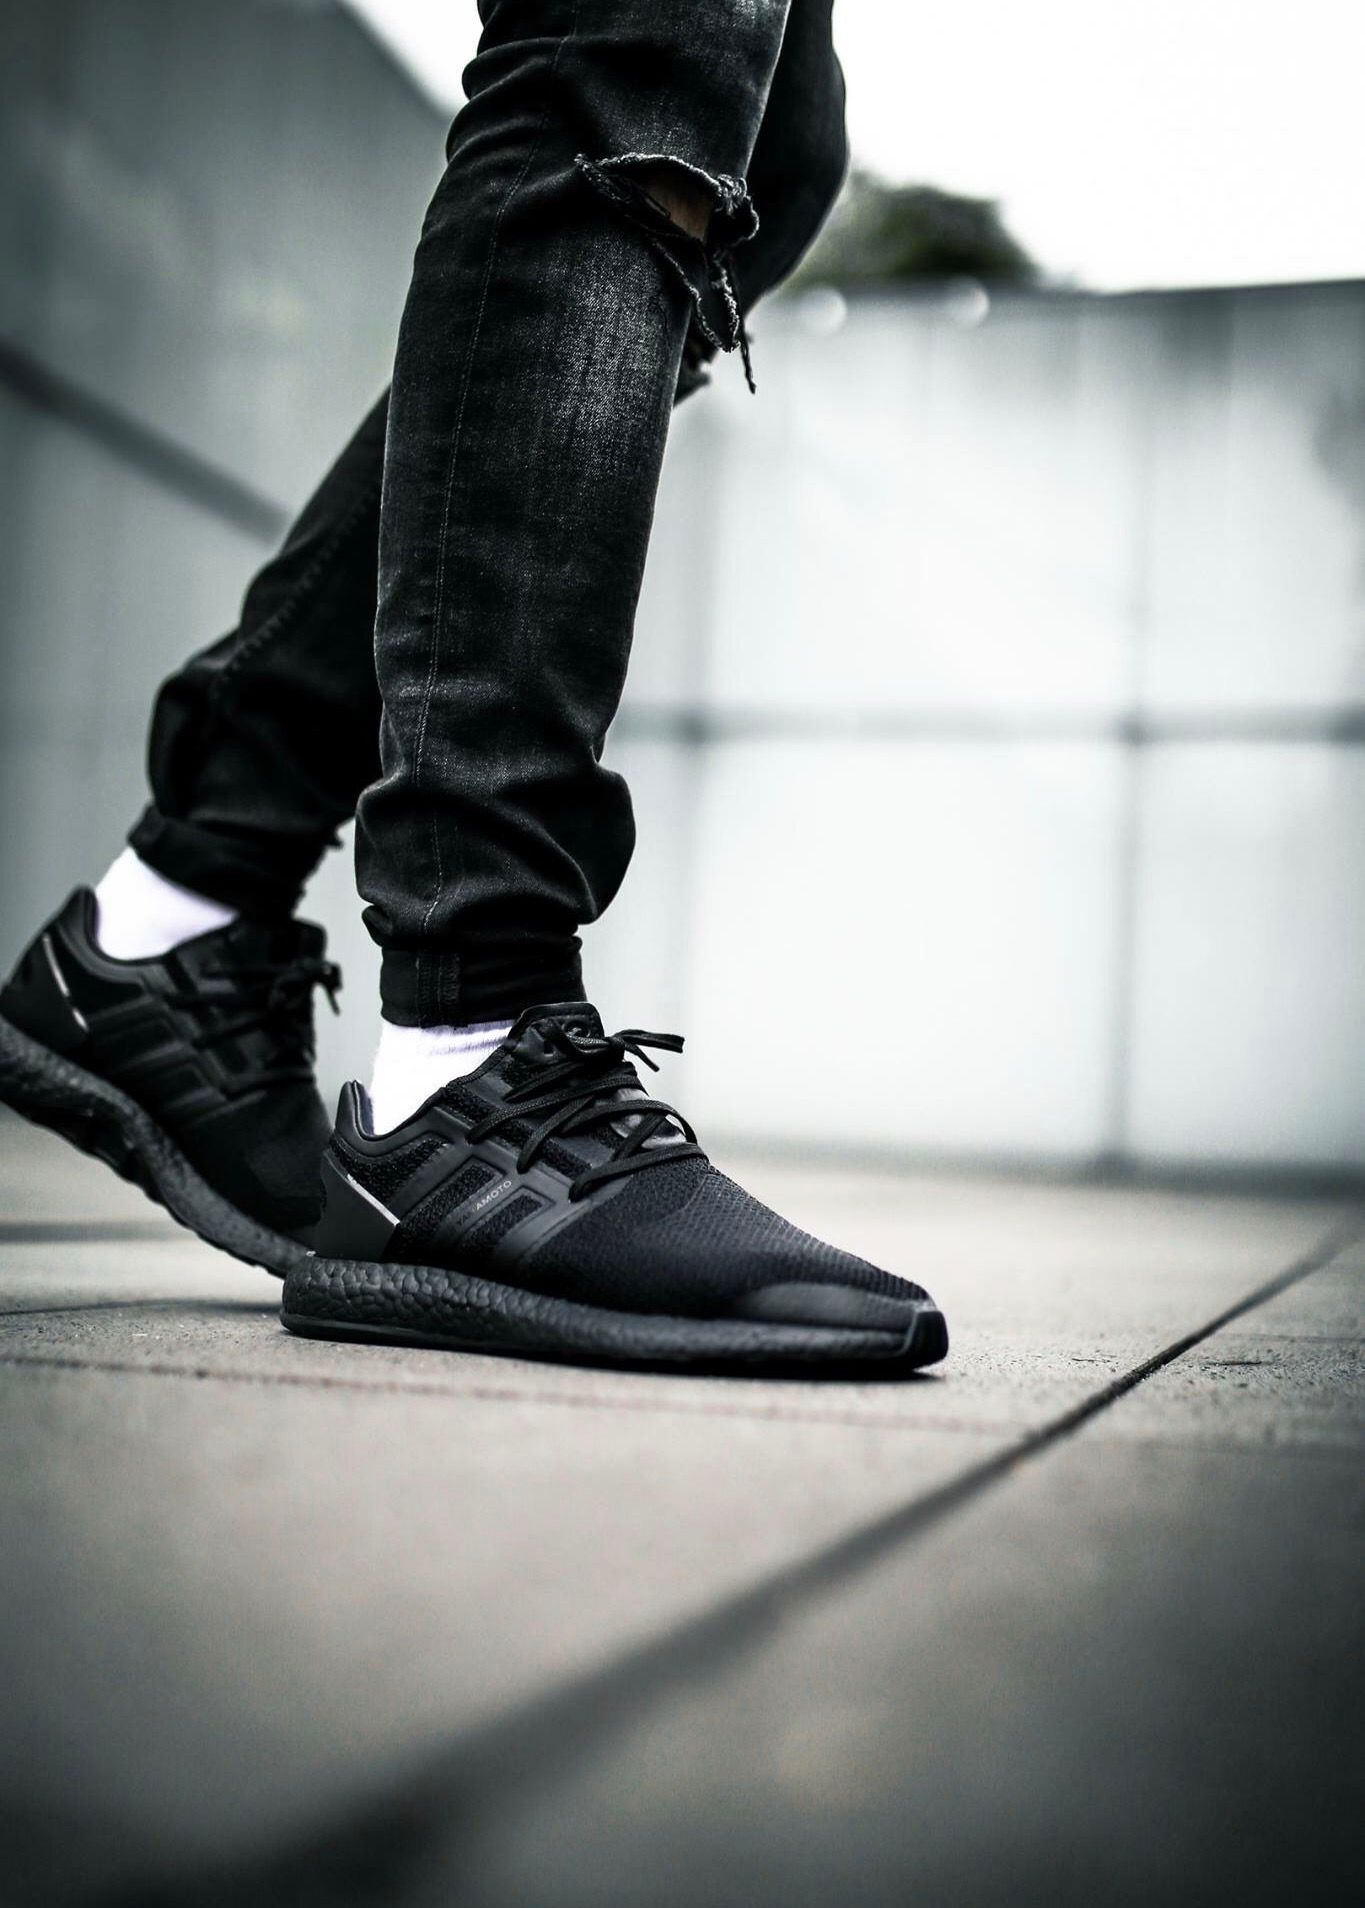 9c86ad1ce1d adidas Y-3 Pure Boost  Triple Black